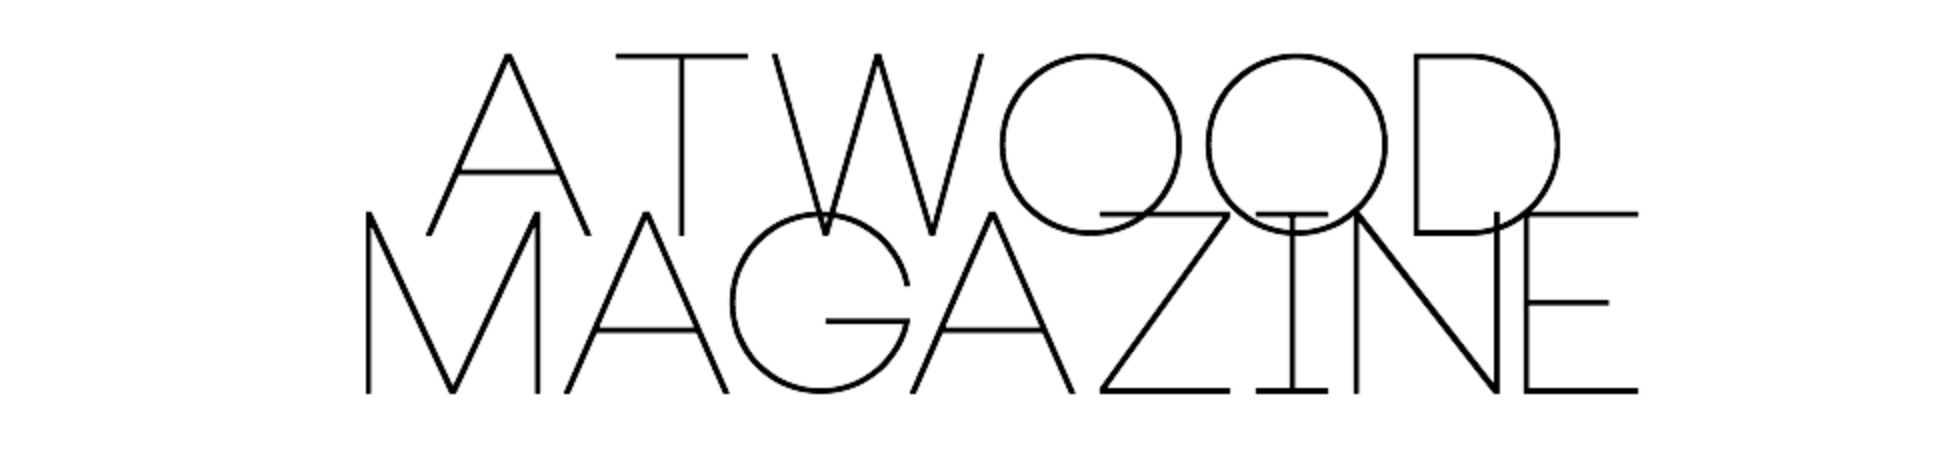 Atwood logo.png